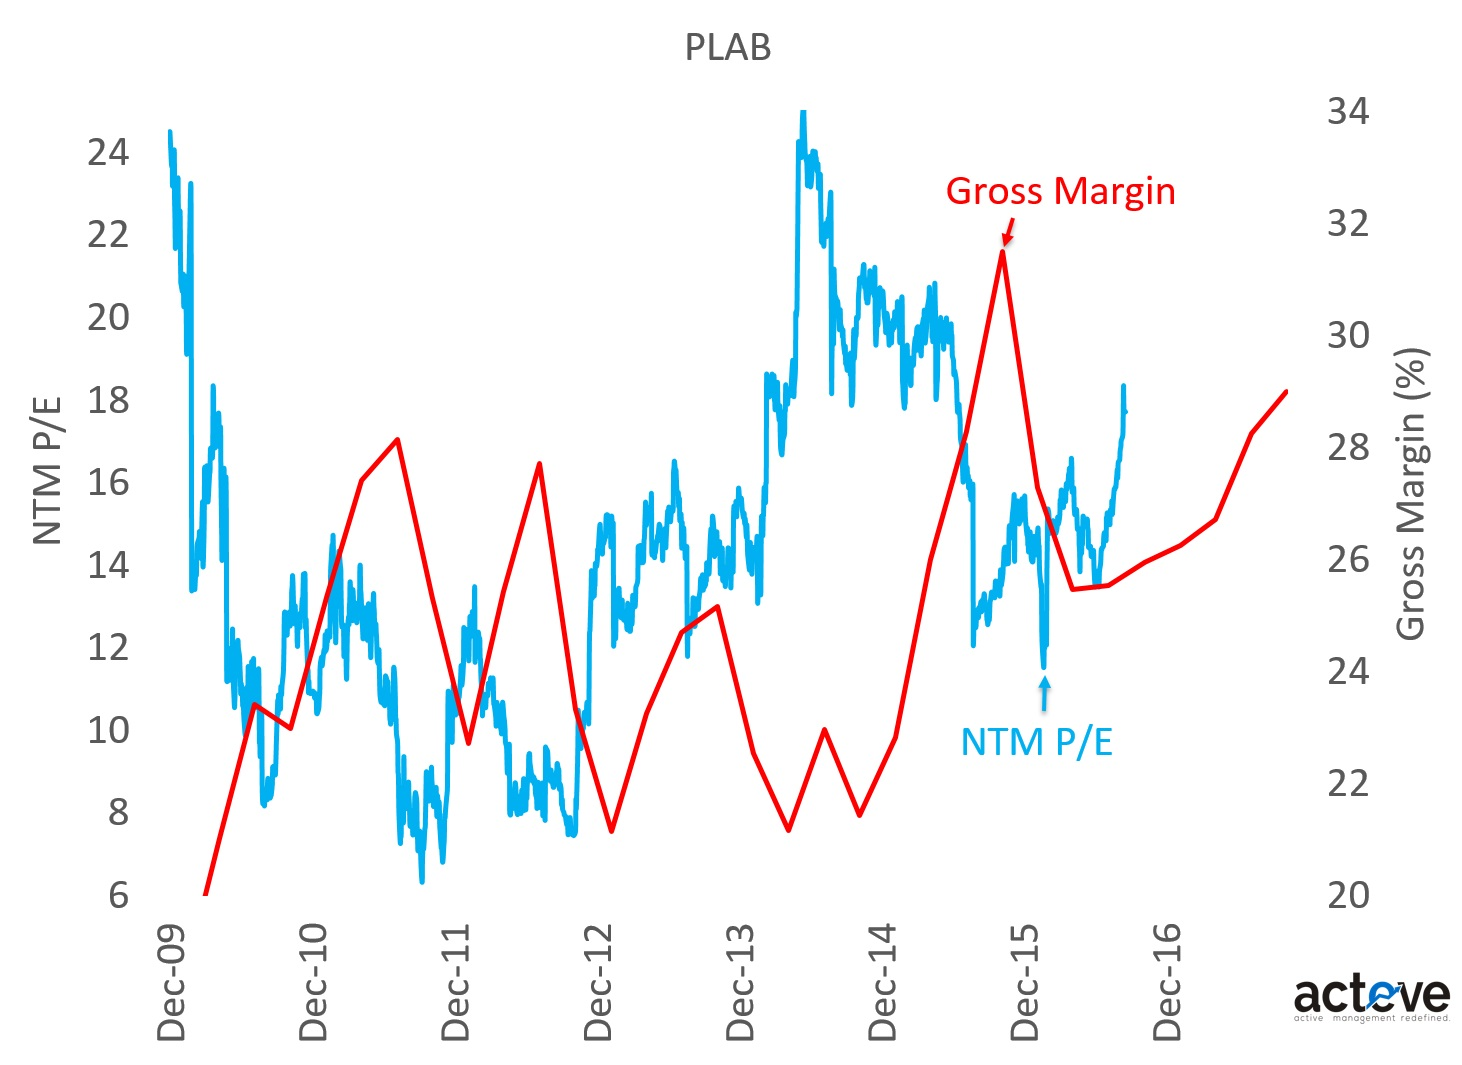 PLAB P/E vs. Gross Margin